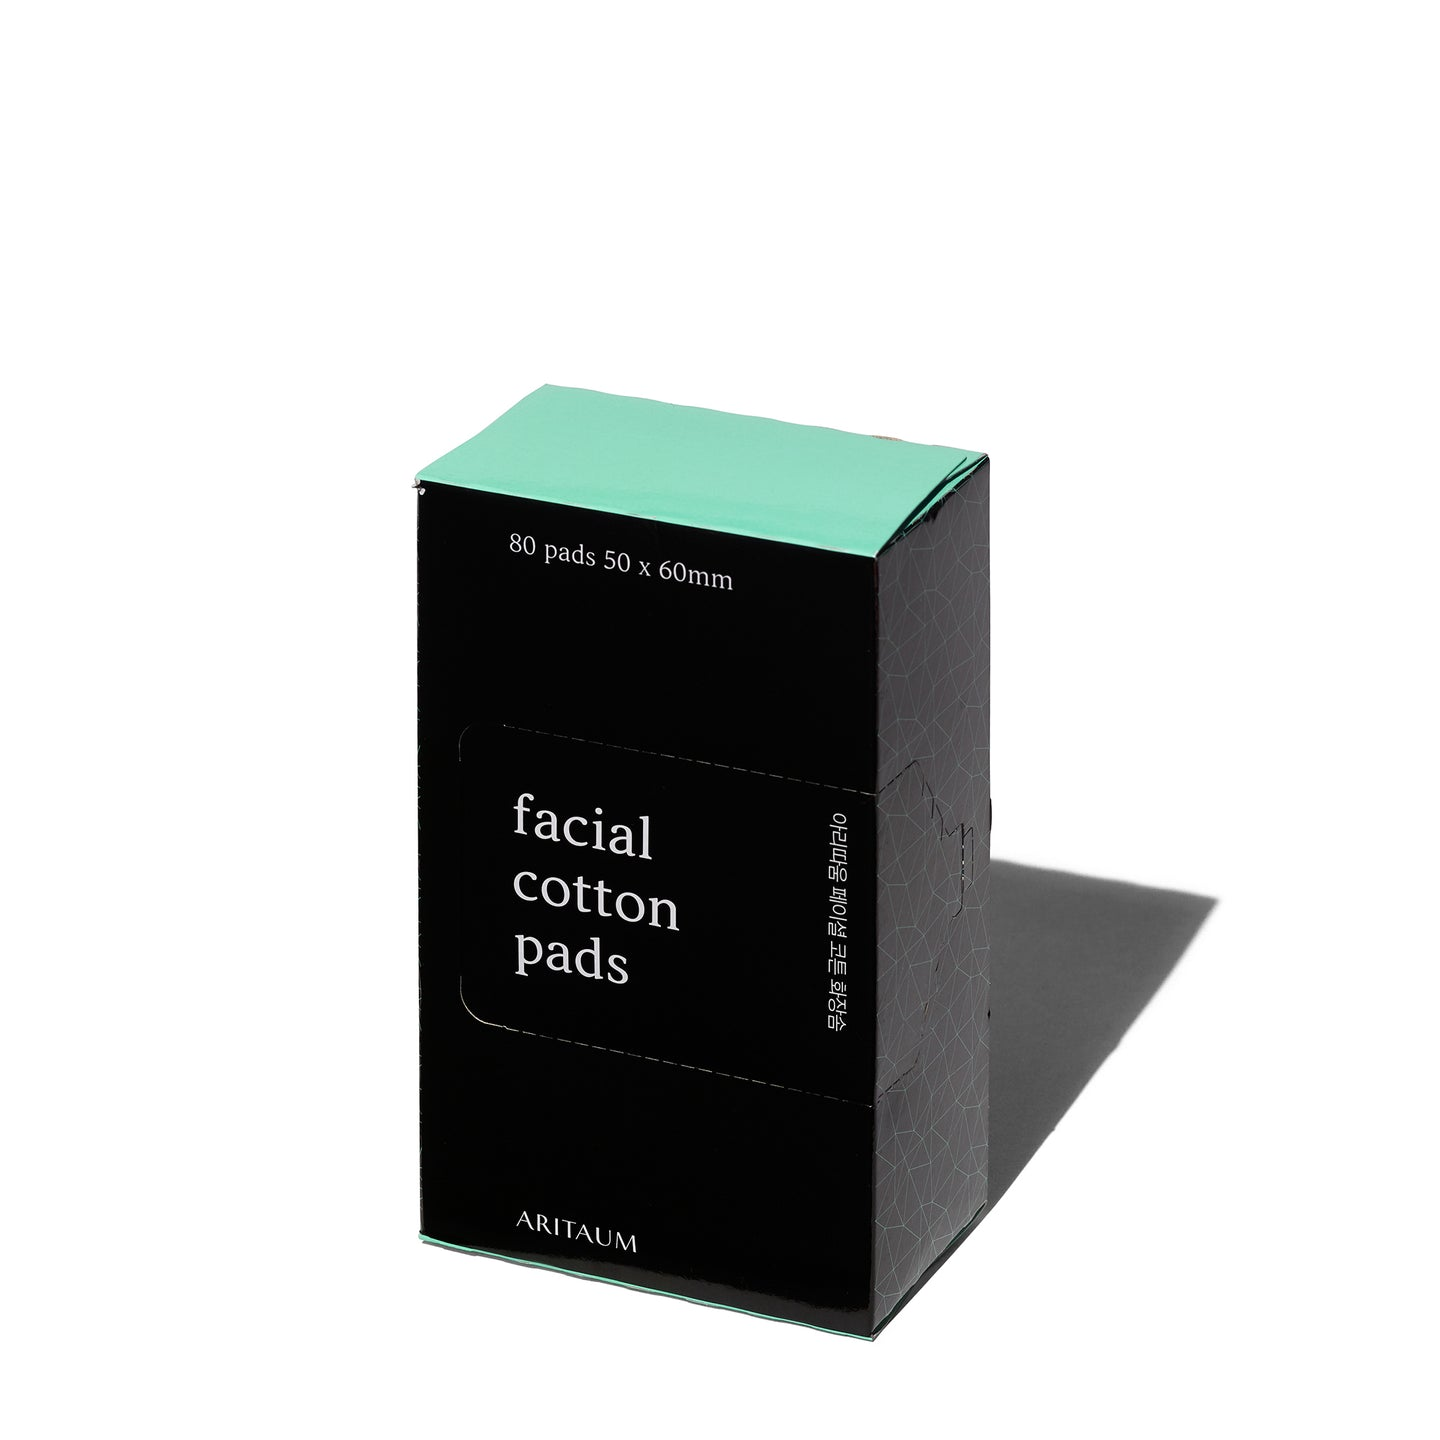 Facial Cotton Pads